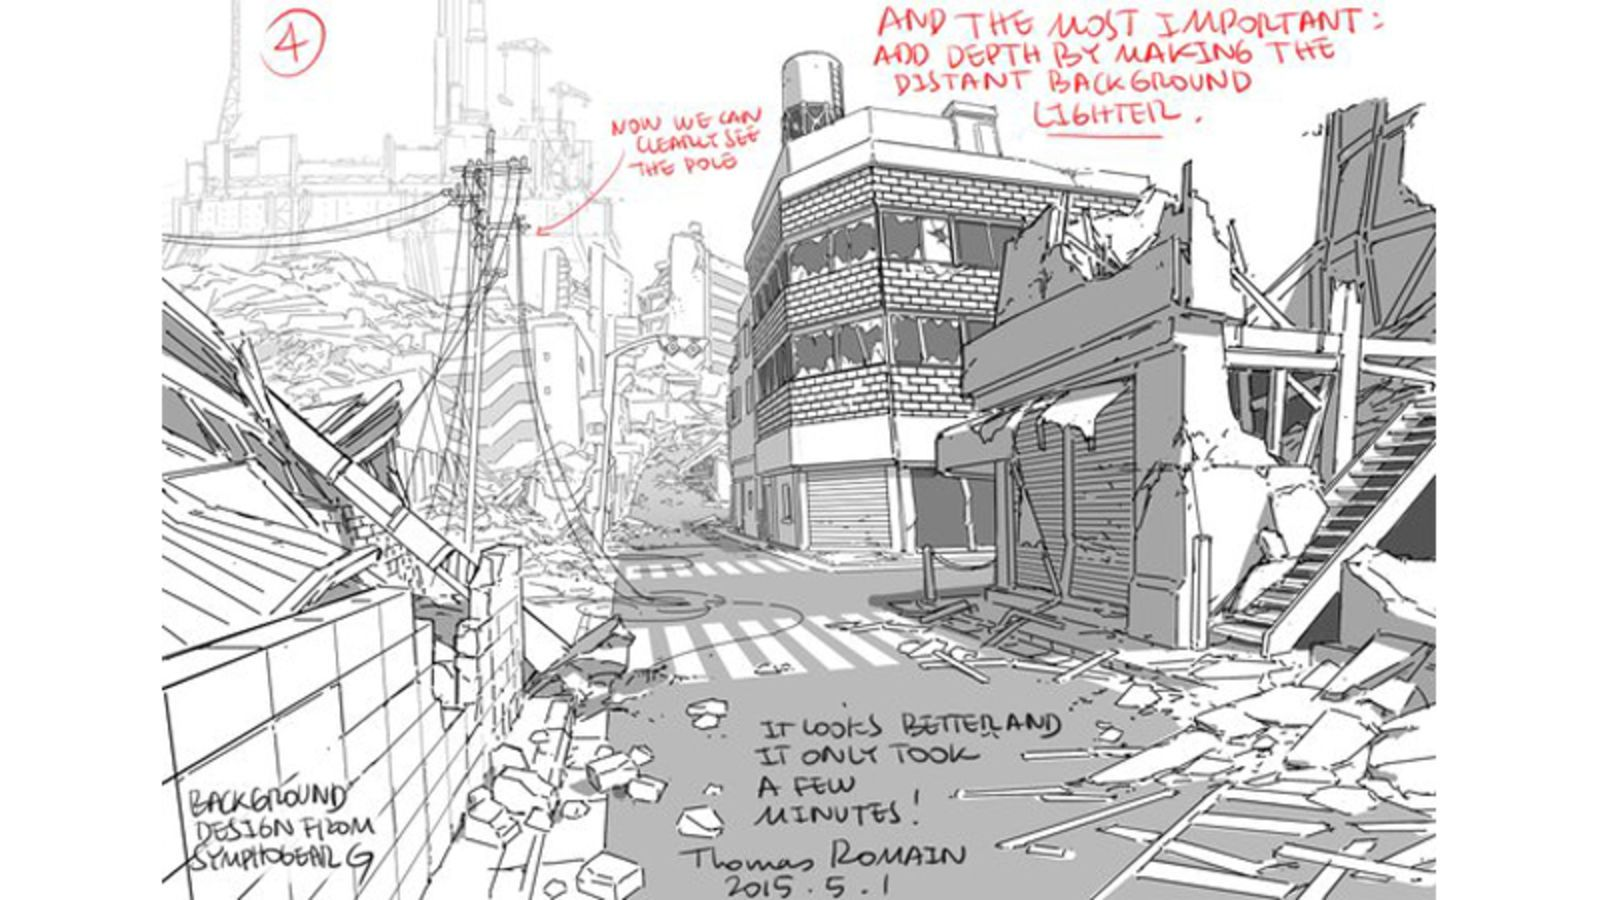 Tips For Drawing Backgrounds Background Drawing Thomas Romain Drawings